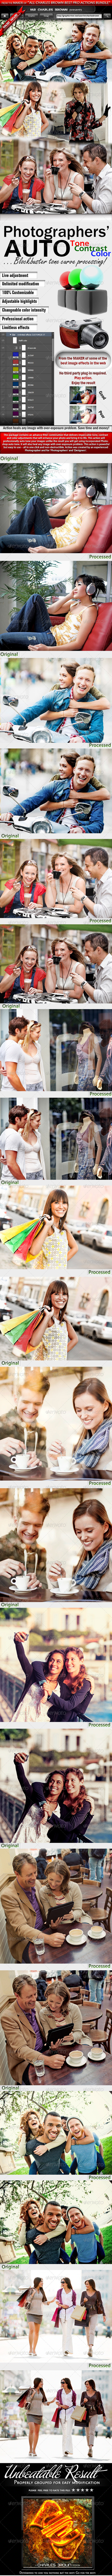 Photographers' Auto Tone, Contrast, and Color - Photo Effects Actions